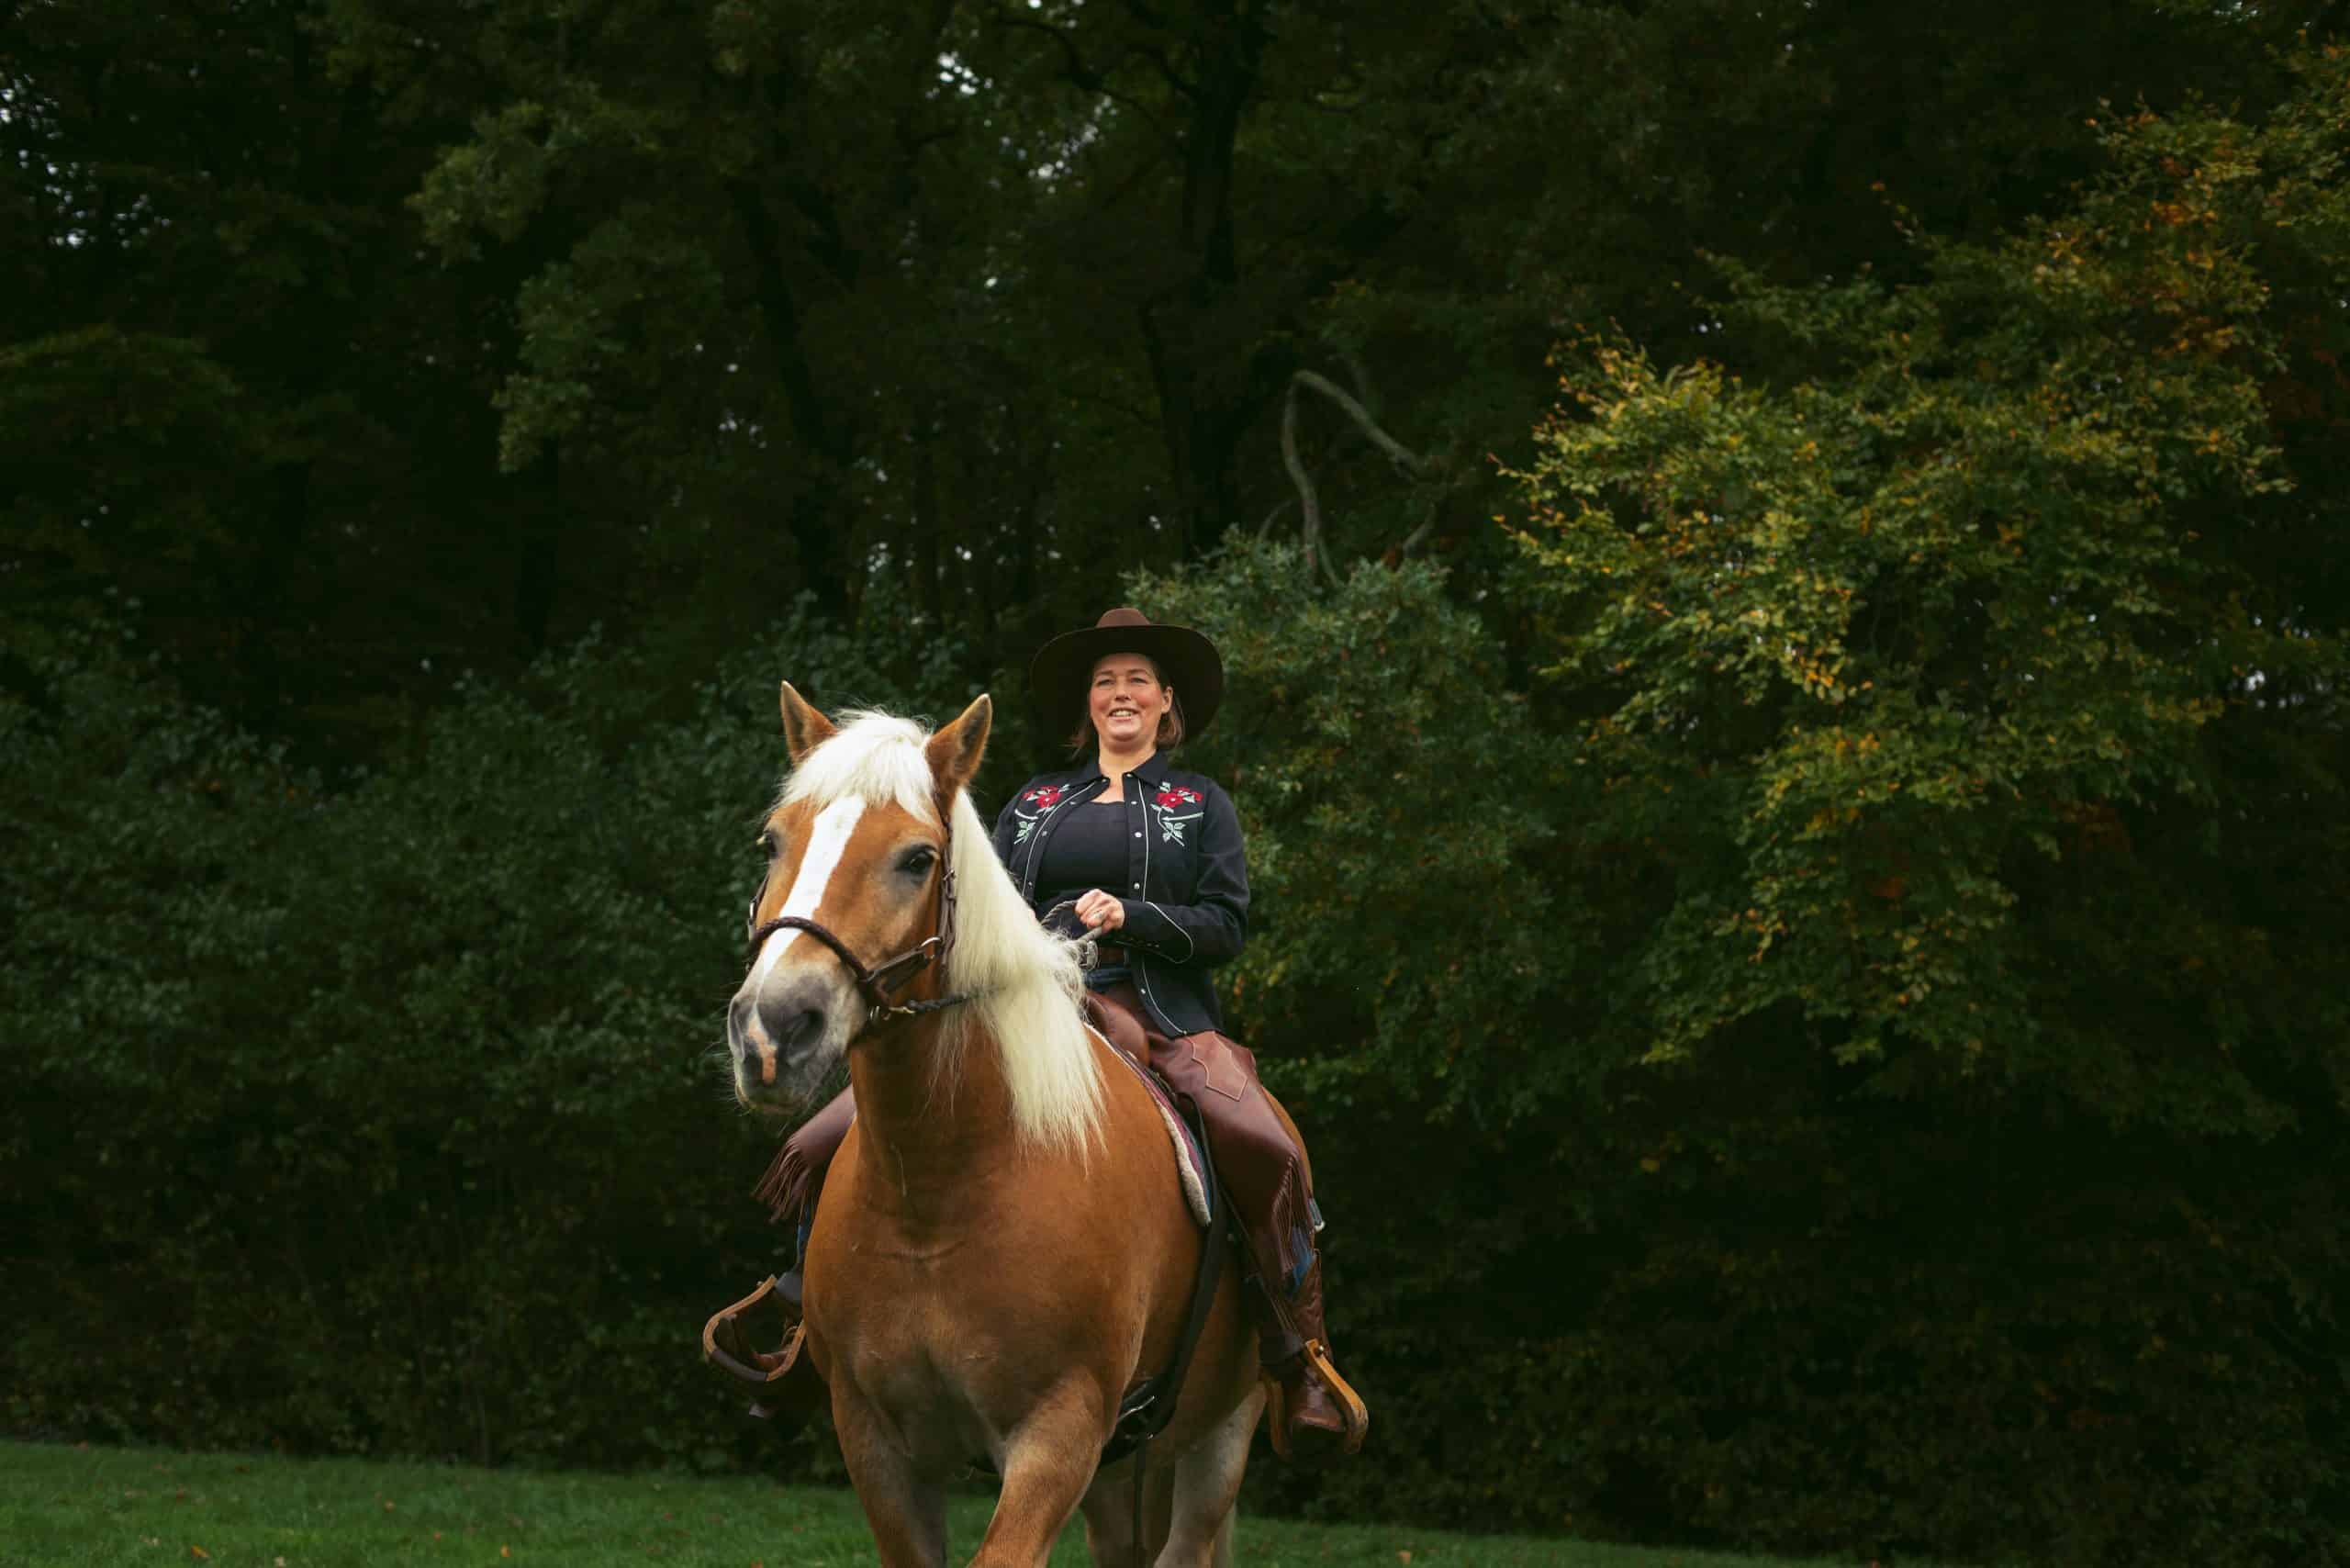 Smiling woman with hat horse riding in forest.